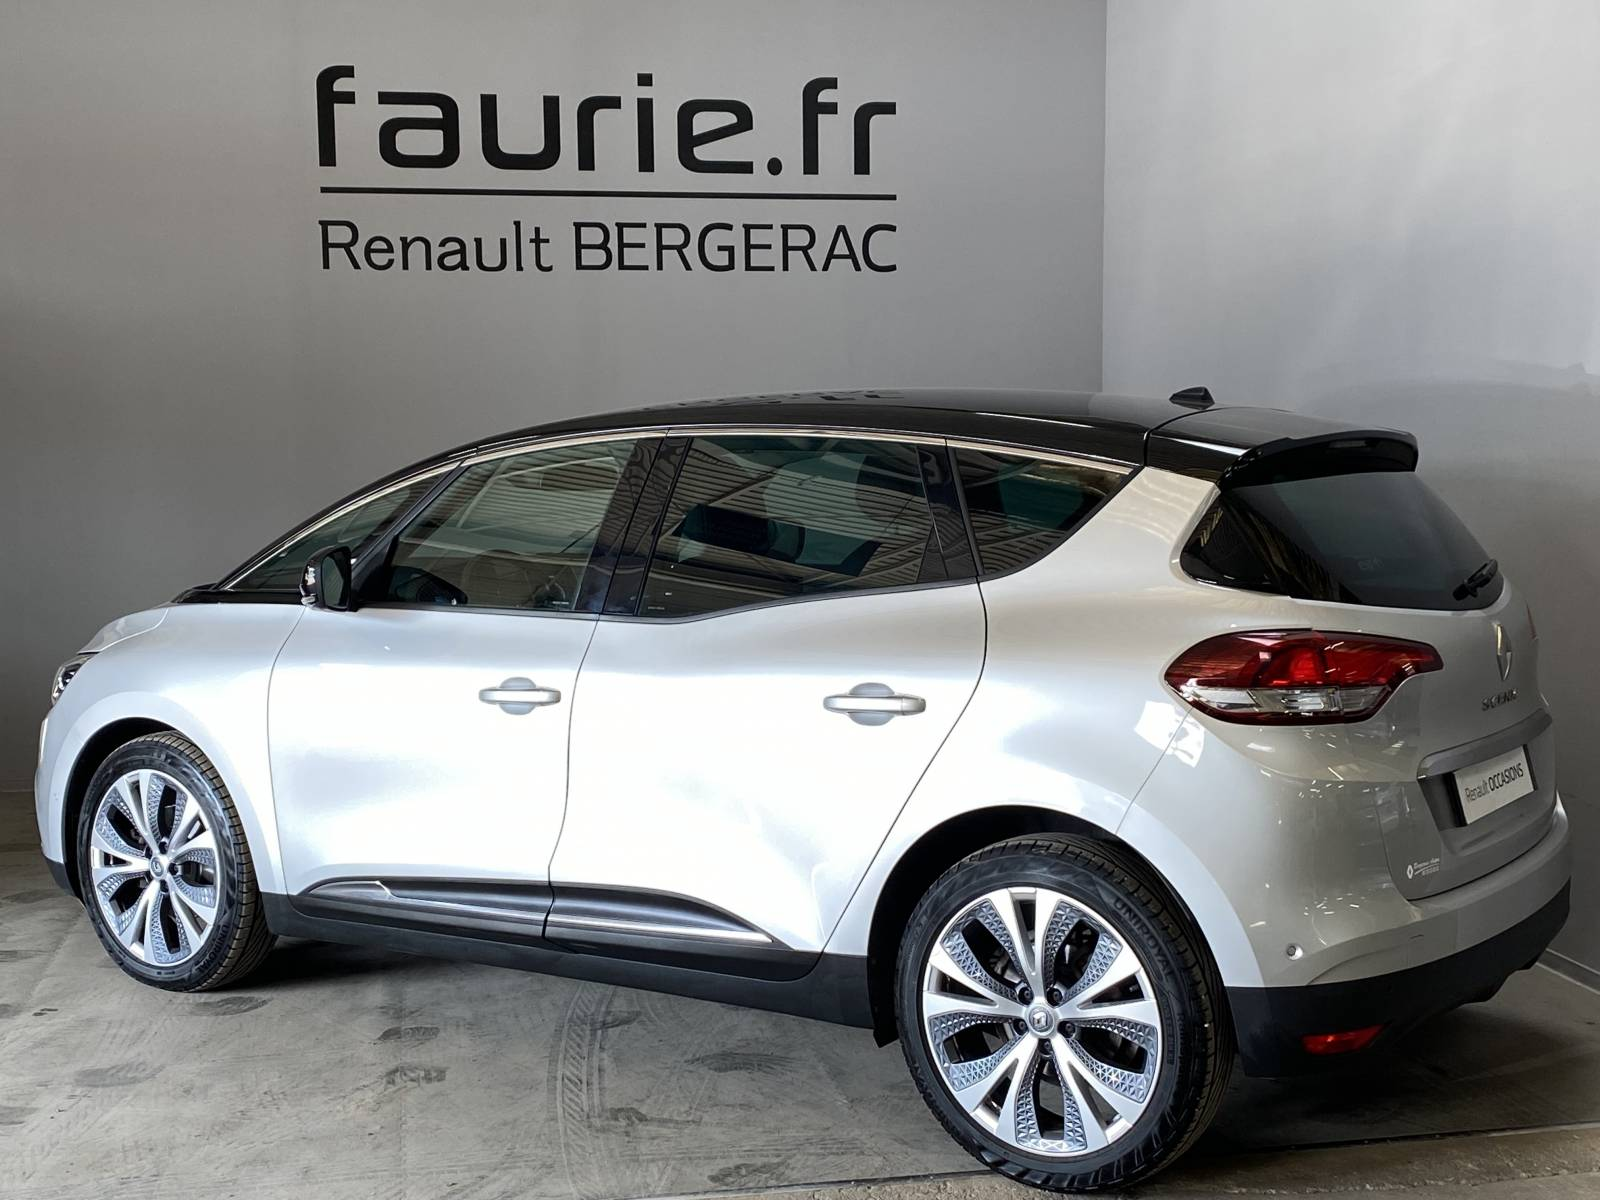 RENAULT Scenic dCi 130 Energy - véhicule d'occasion - Site Internet Faurie - Renault - Faurie Auto Bergerac - 24100 - Bergerac - 8